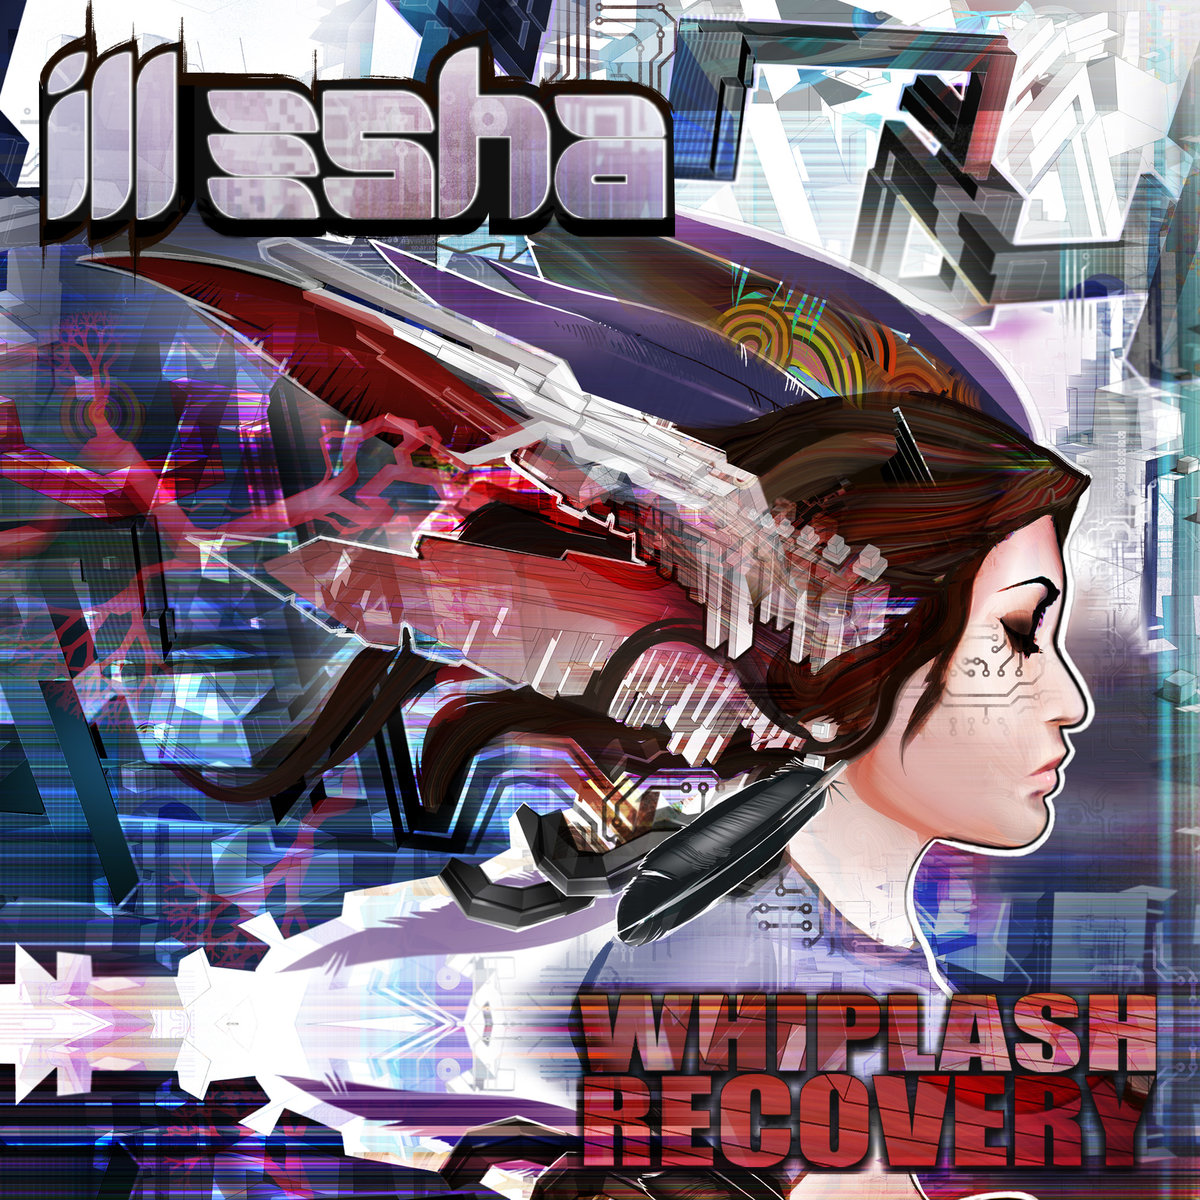 ill-esha - Whiplash Recovery (G Jones Remix) @ 'Whiplash Recovery' album (california, denver)